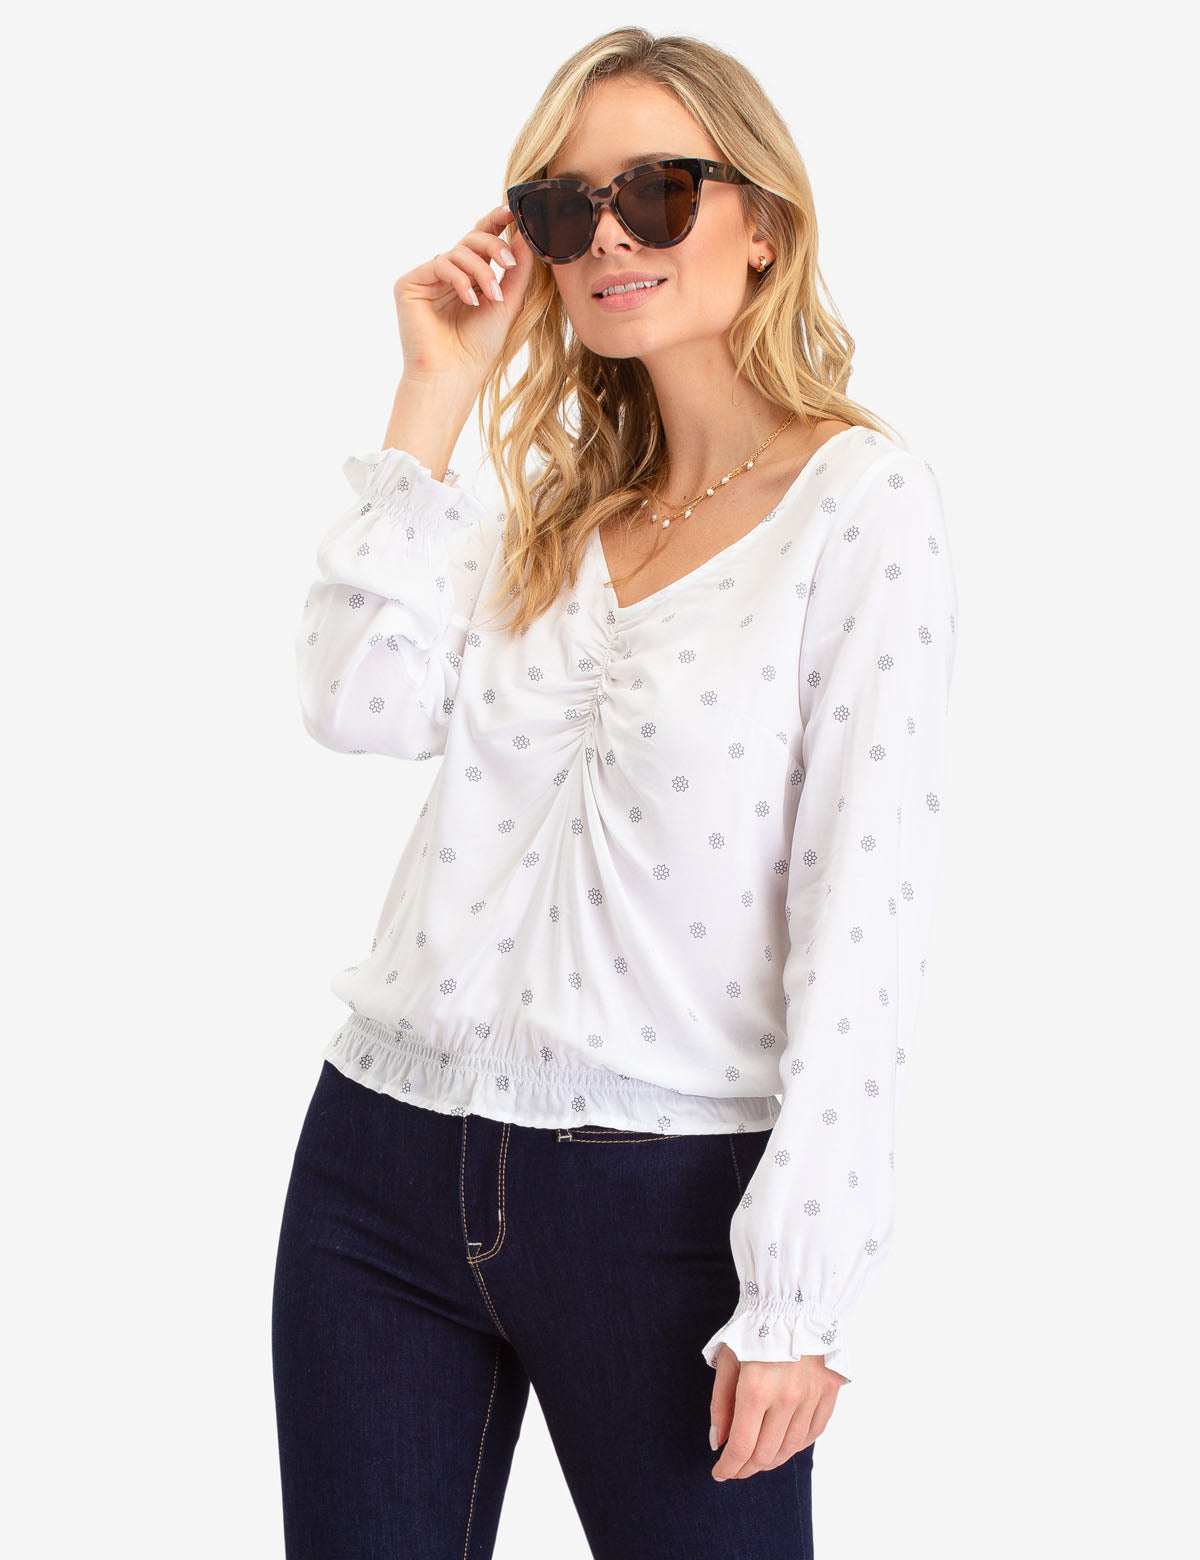 STAR PRINT RUFFLE SLEEVE TOP